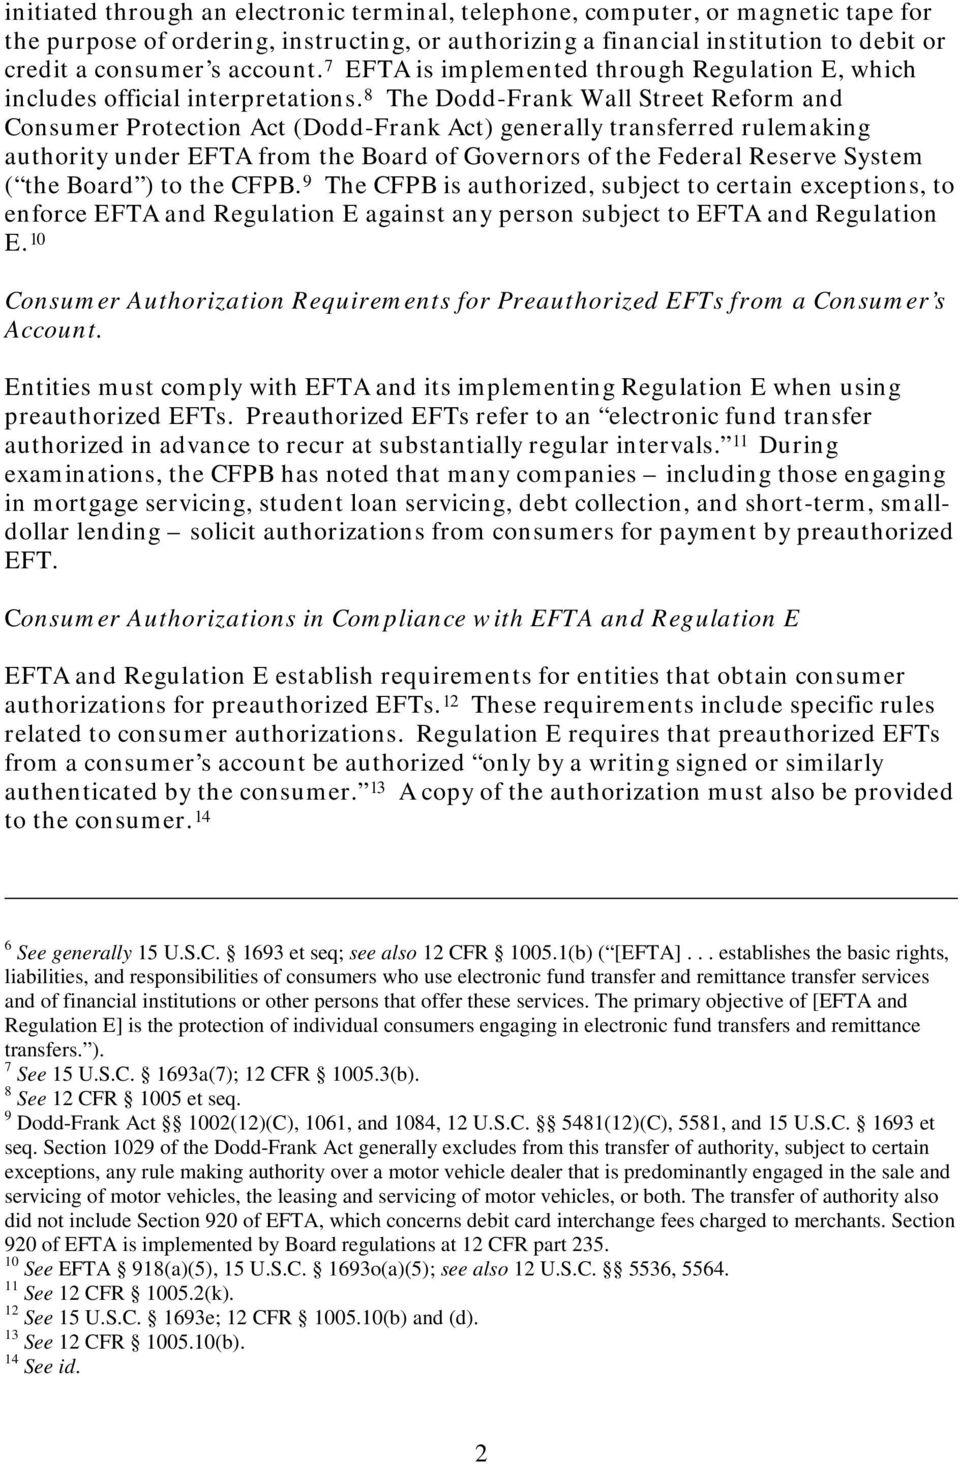 8 The Dodd-Frank Wall Street Reform and Consumer Protection Act (Dodd-Frank Act) generally transferred rulemaking authority under EFTA from the Board of Governors of the Federal Reserve System ( the